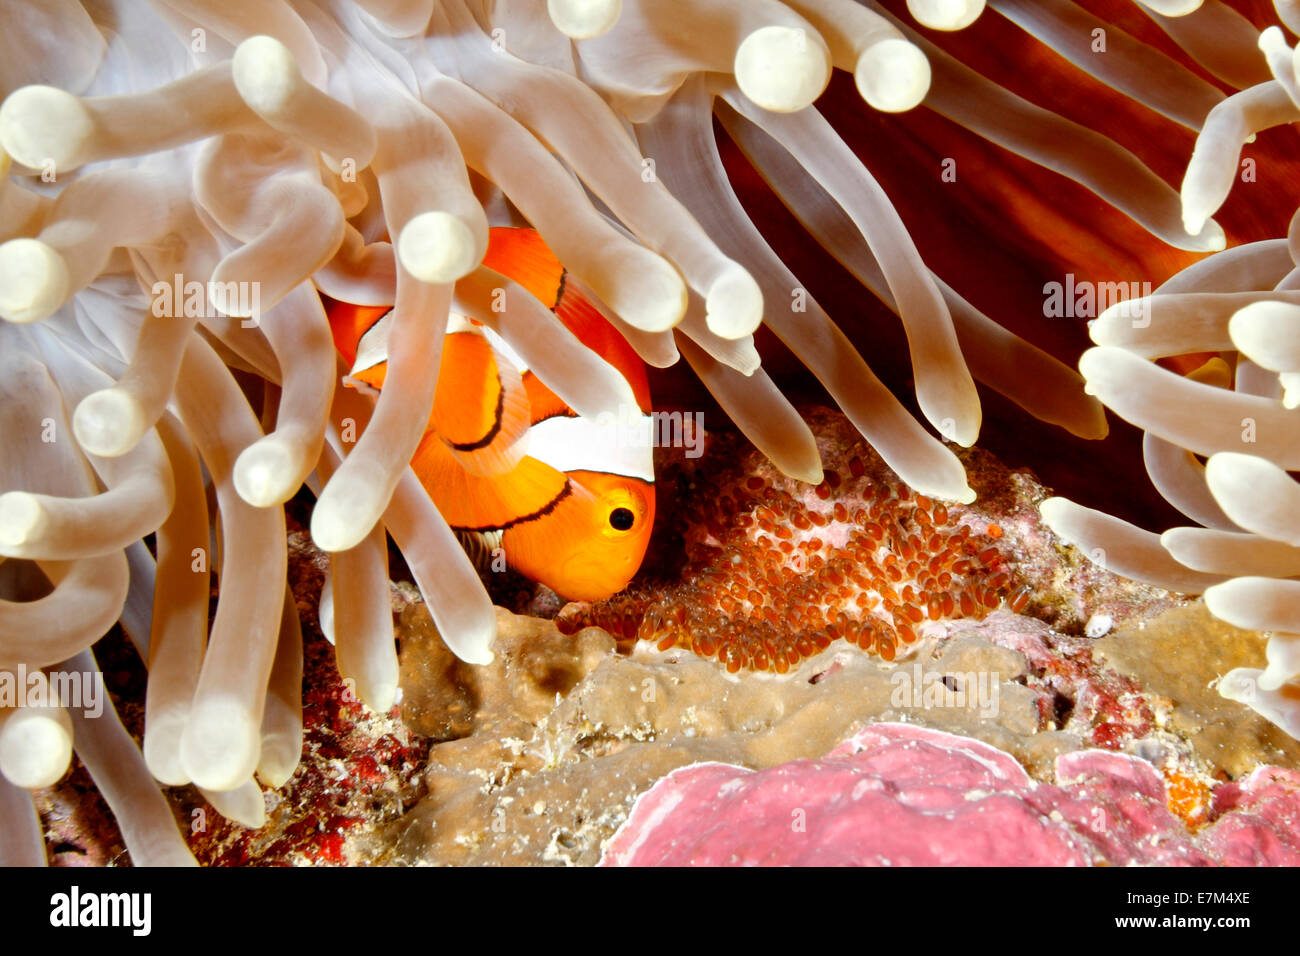 clown-anemonefish-amphiprion-percula-tending-eggs-laid-at-the-base-E7M4XE.jpg